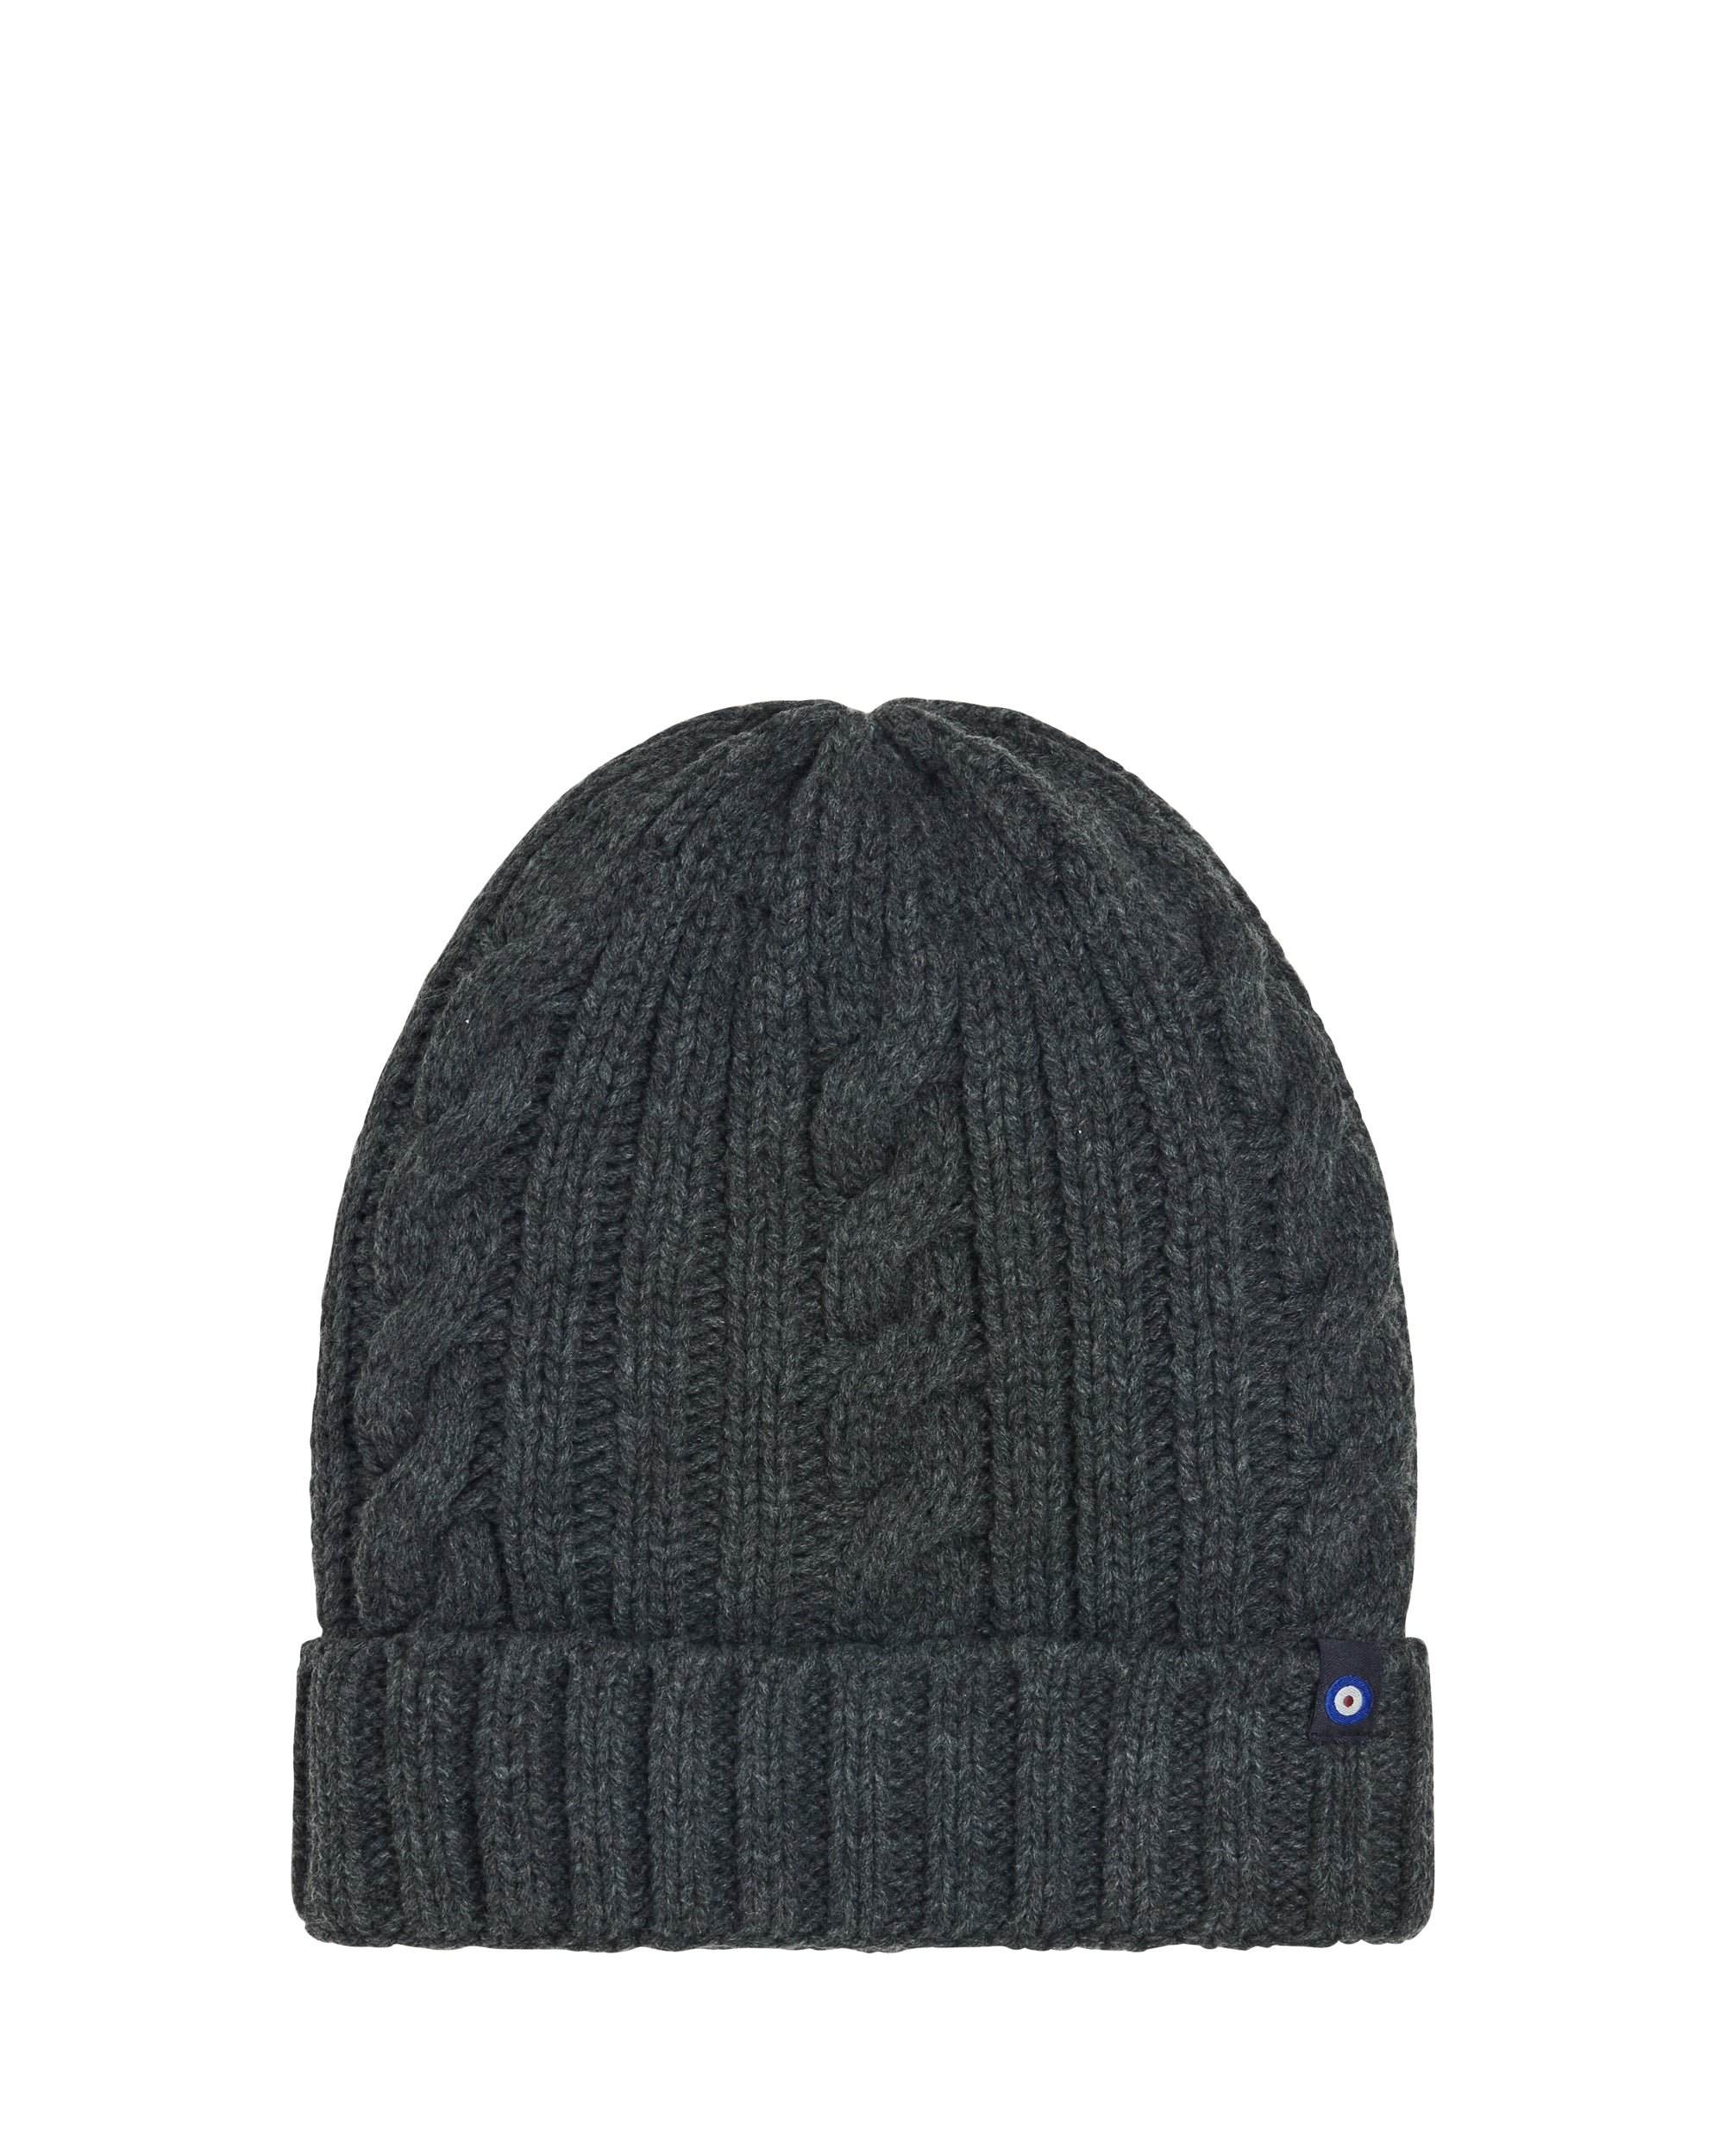 Cable Knit Rib Toque Beanie Hat with Plush Lining - Charcoal